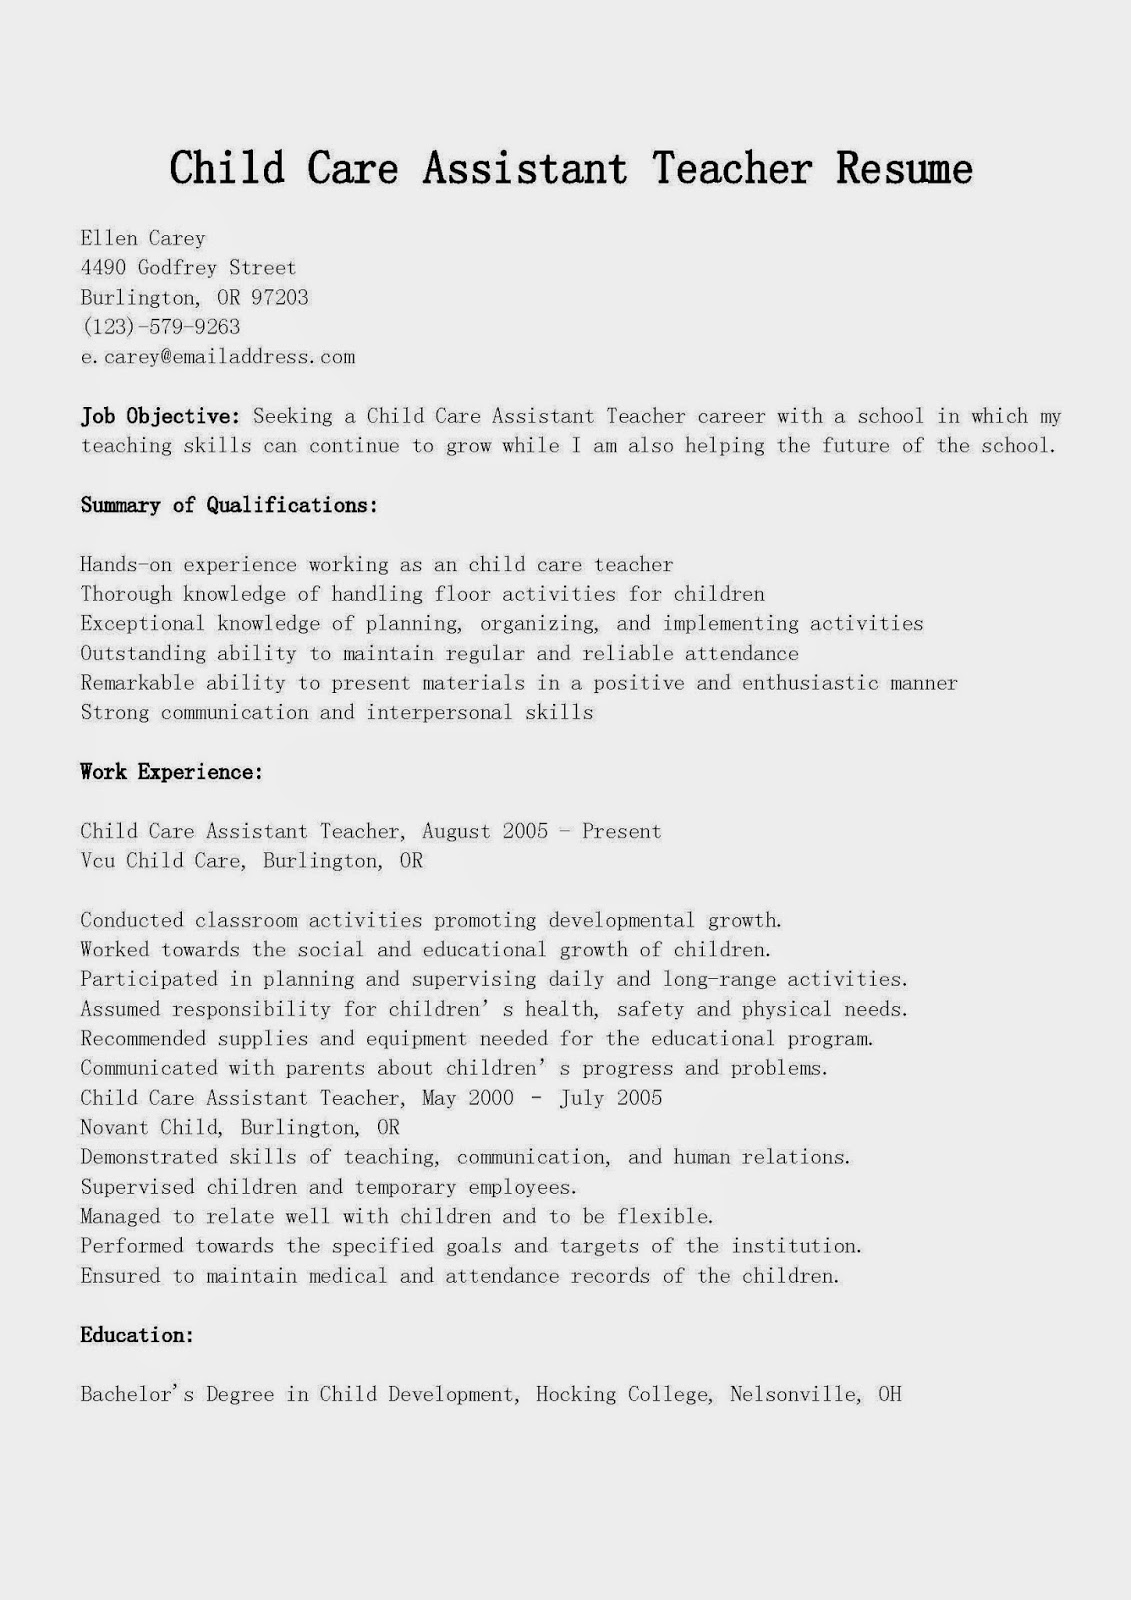 geologist cover letter and resume sample gis analyst resume - Geologist Cover Letter